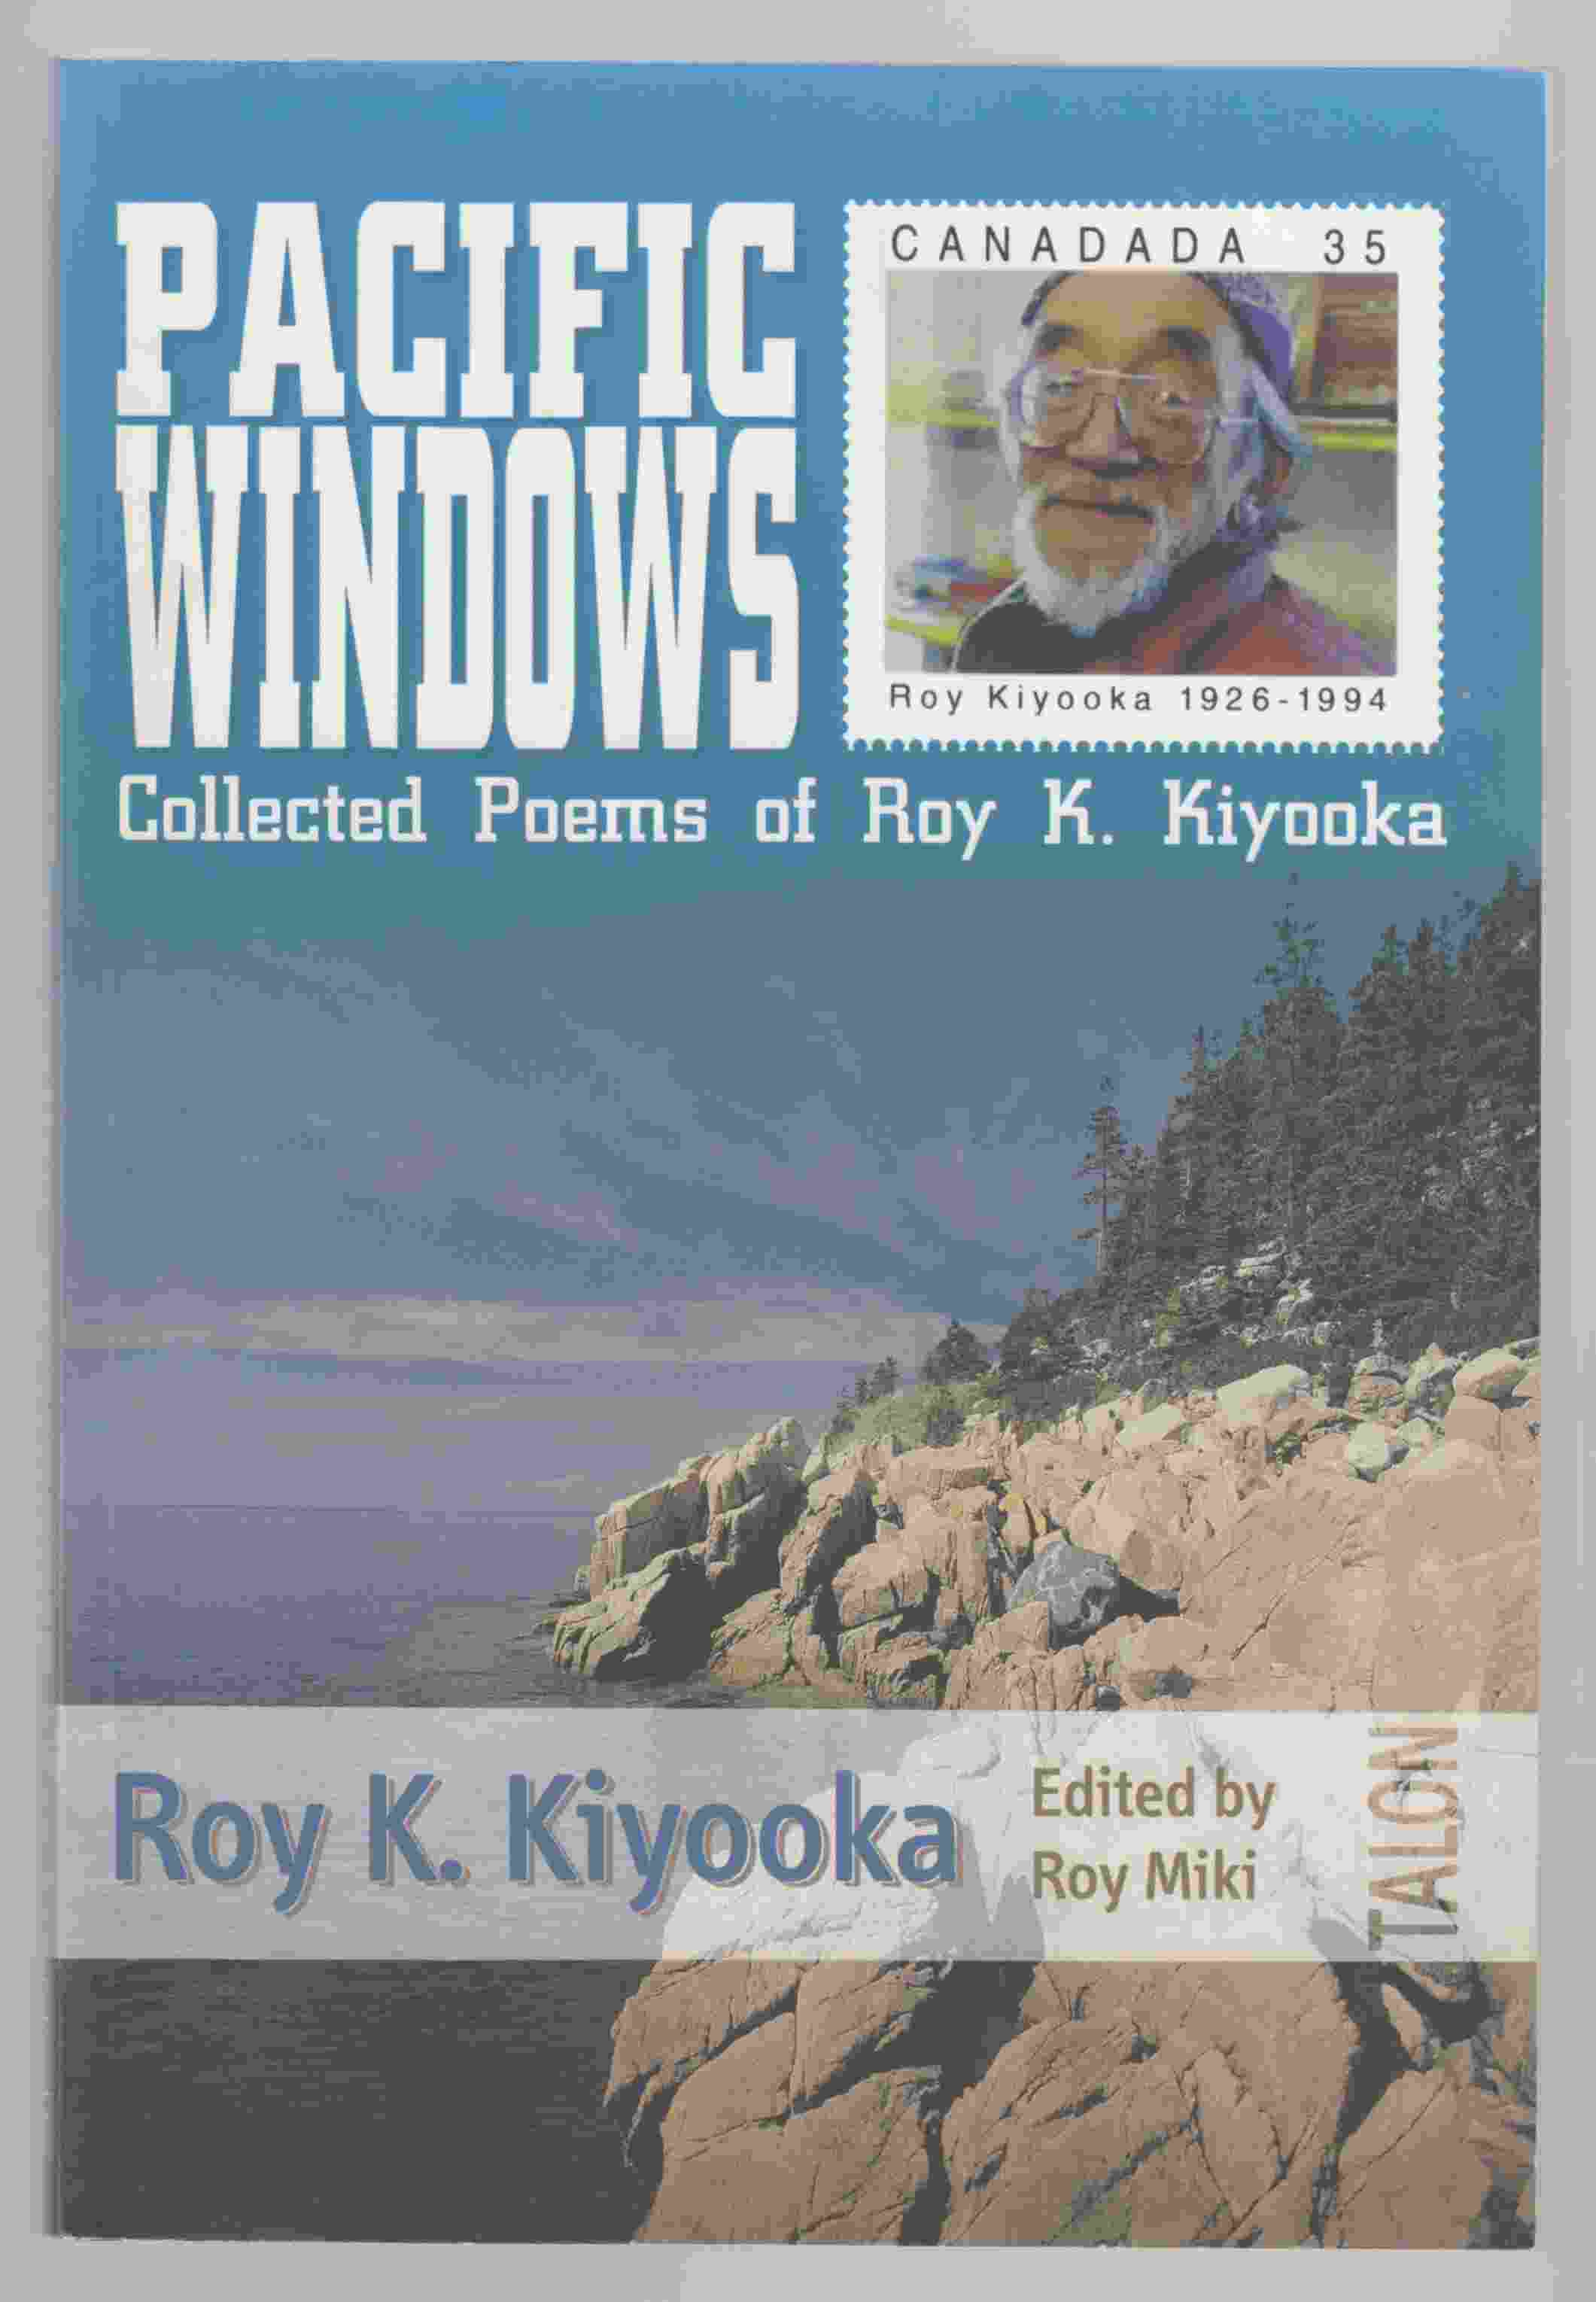 Image for Pacific Windows Collected Poems of Roy K. Kiyooka